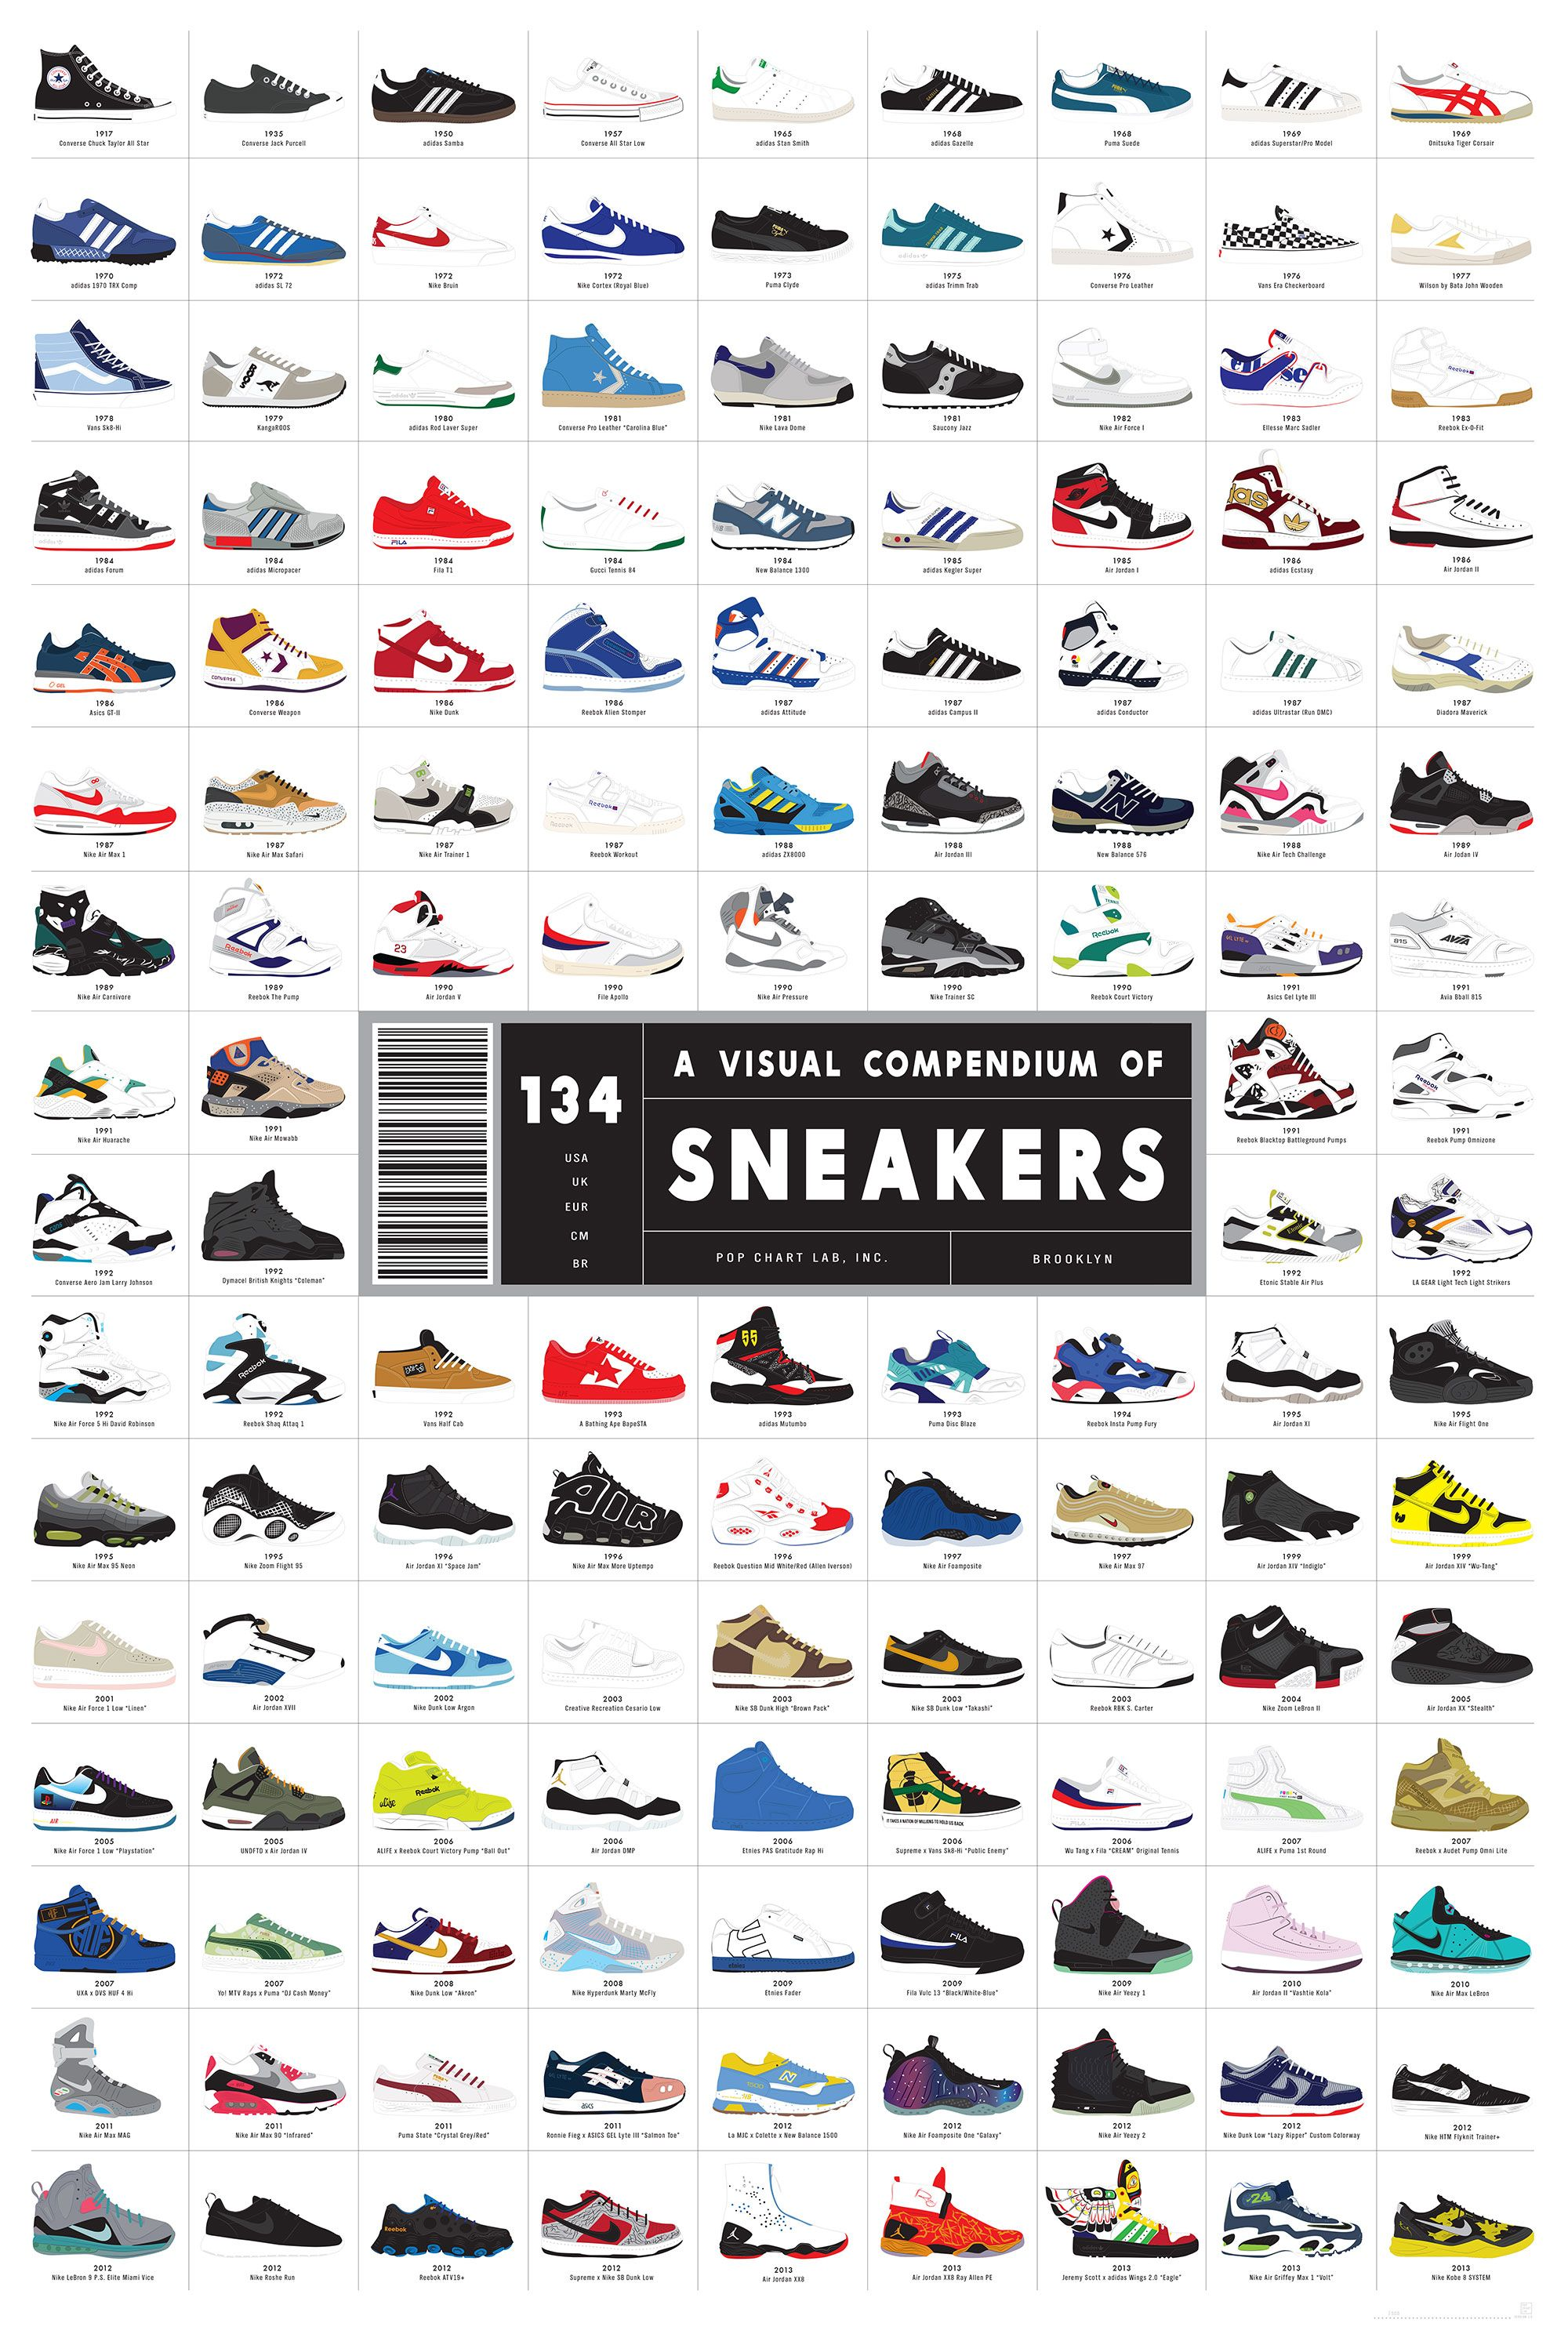 quality design c9b8d ddc09 2  Infographic The Ultimate History Of Sneaker Design  Co.Design  business + innovation + design